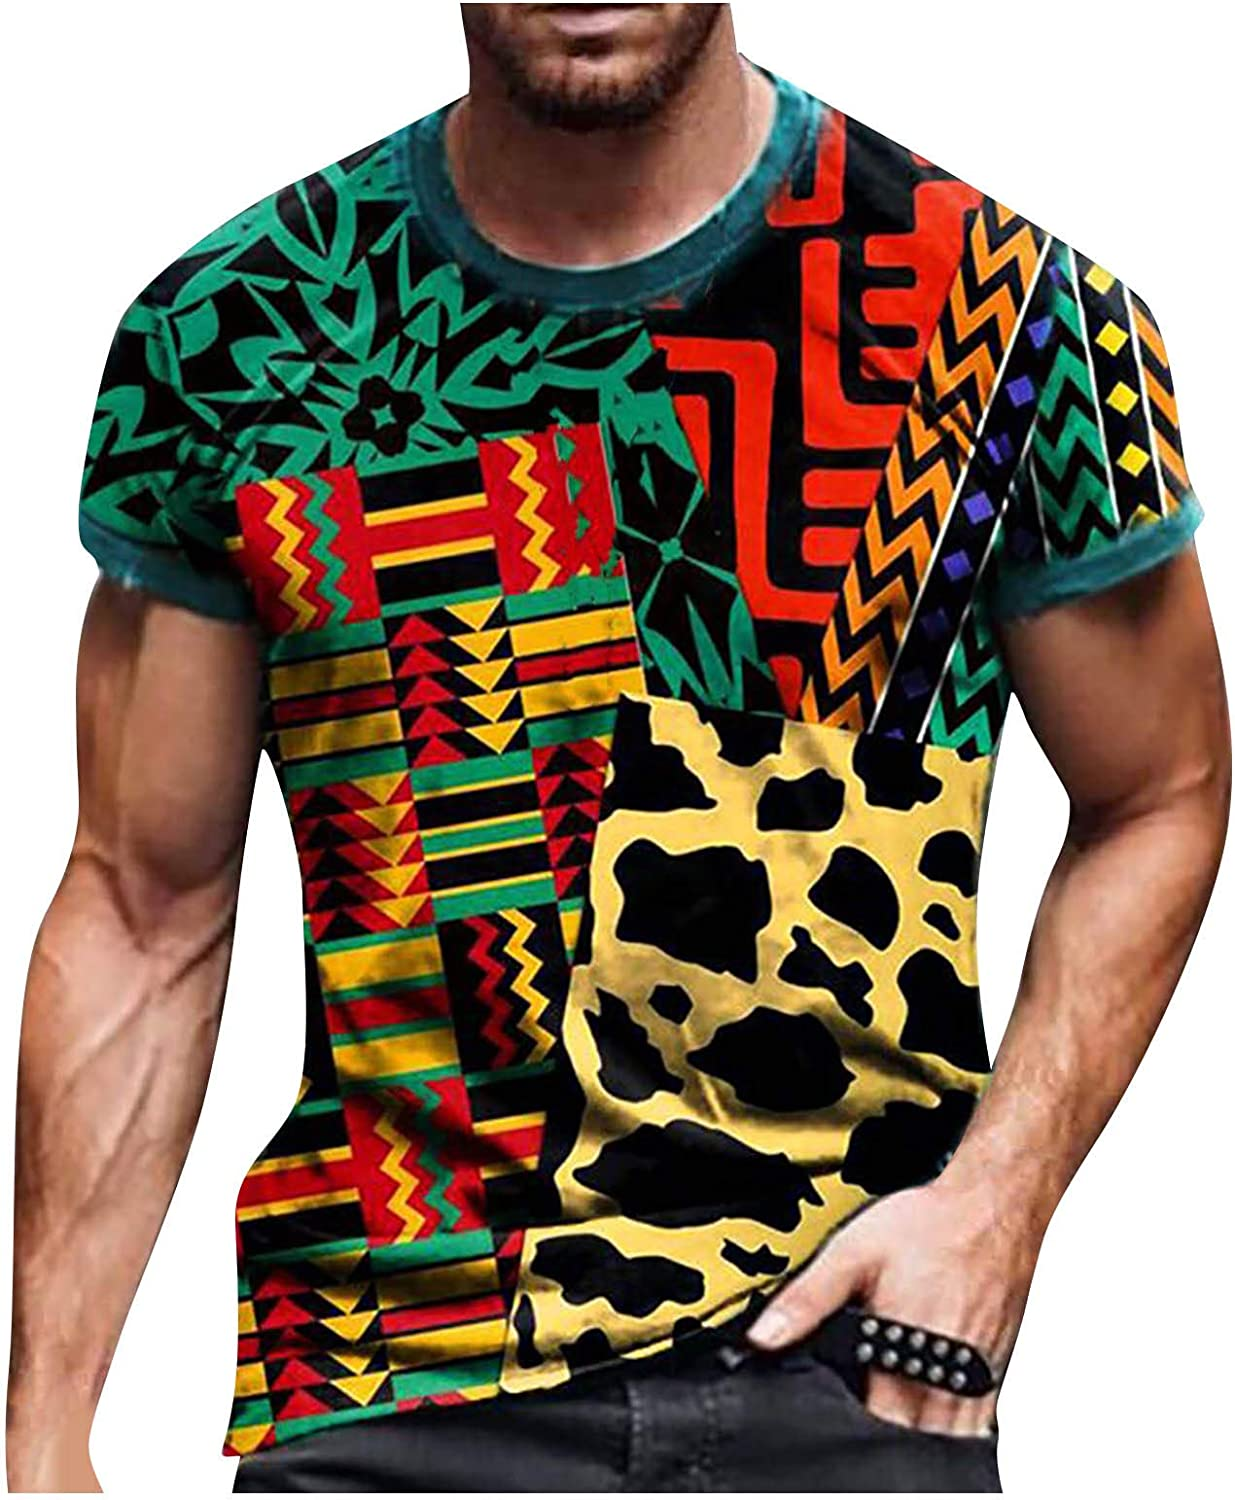 DZQUY Mens Summer Slim Fit Short Sleeve T Shirts Casual Hipster Hip Hop Ripped Round Print Graphic Tee Shirts Tops Blouse